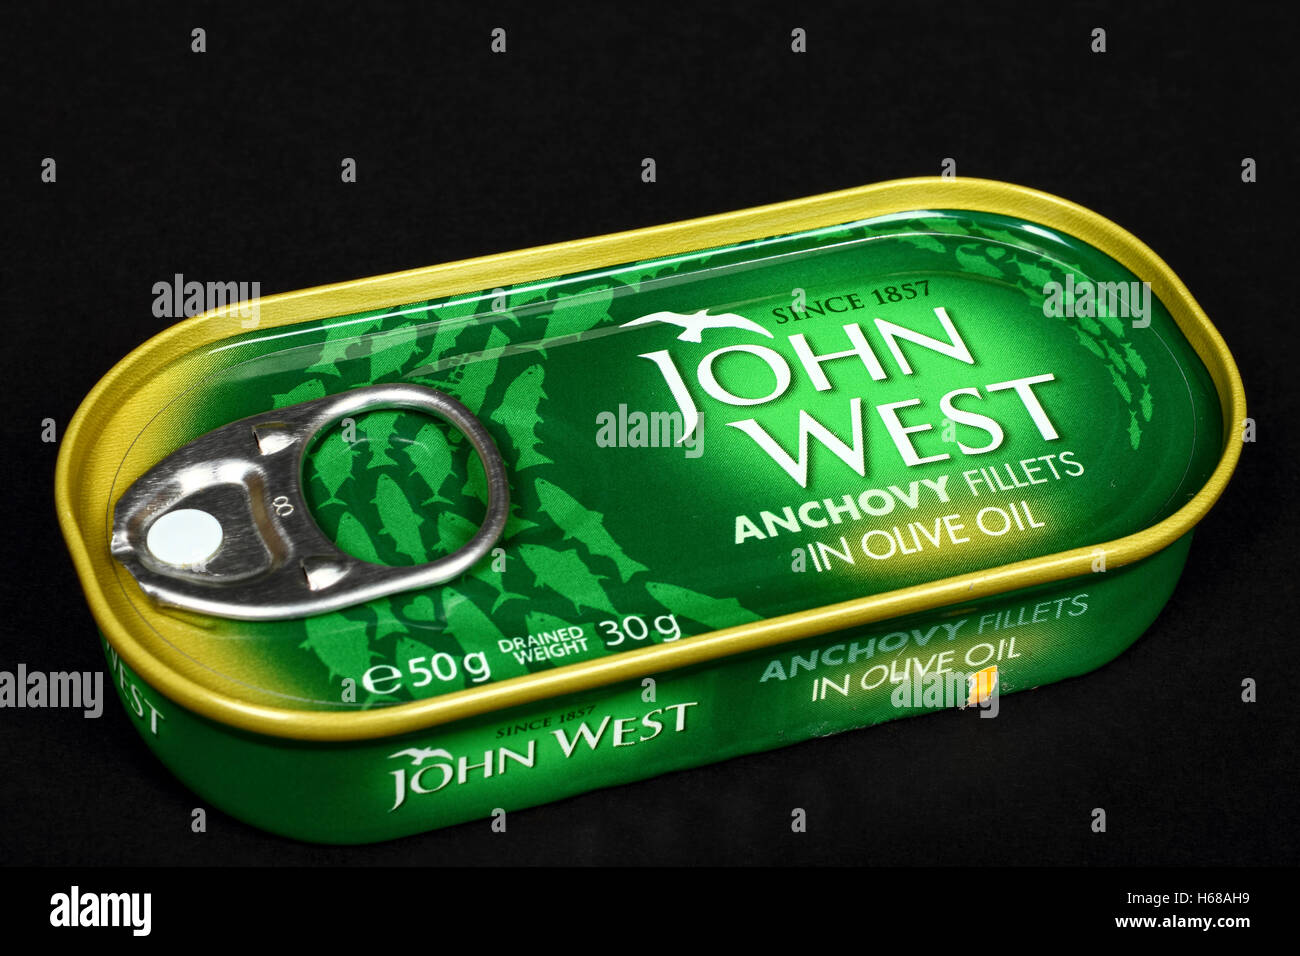 John west tinned anchovies isolated on a black background - Stock Image